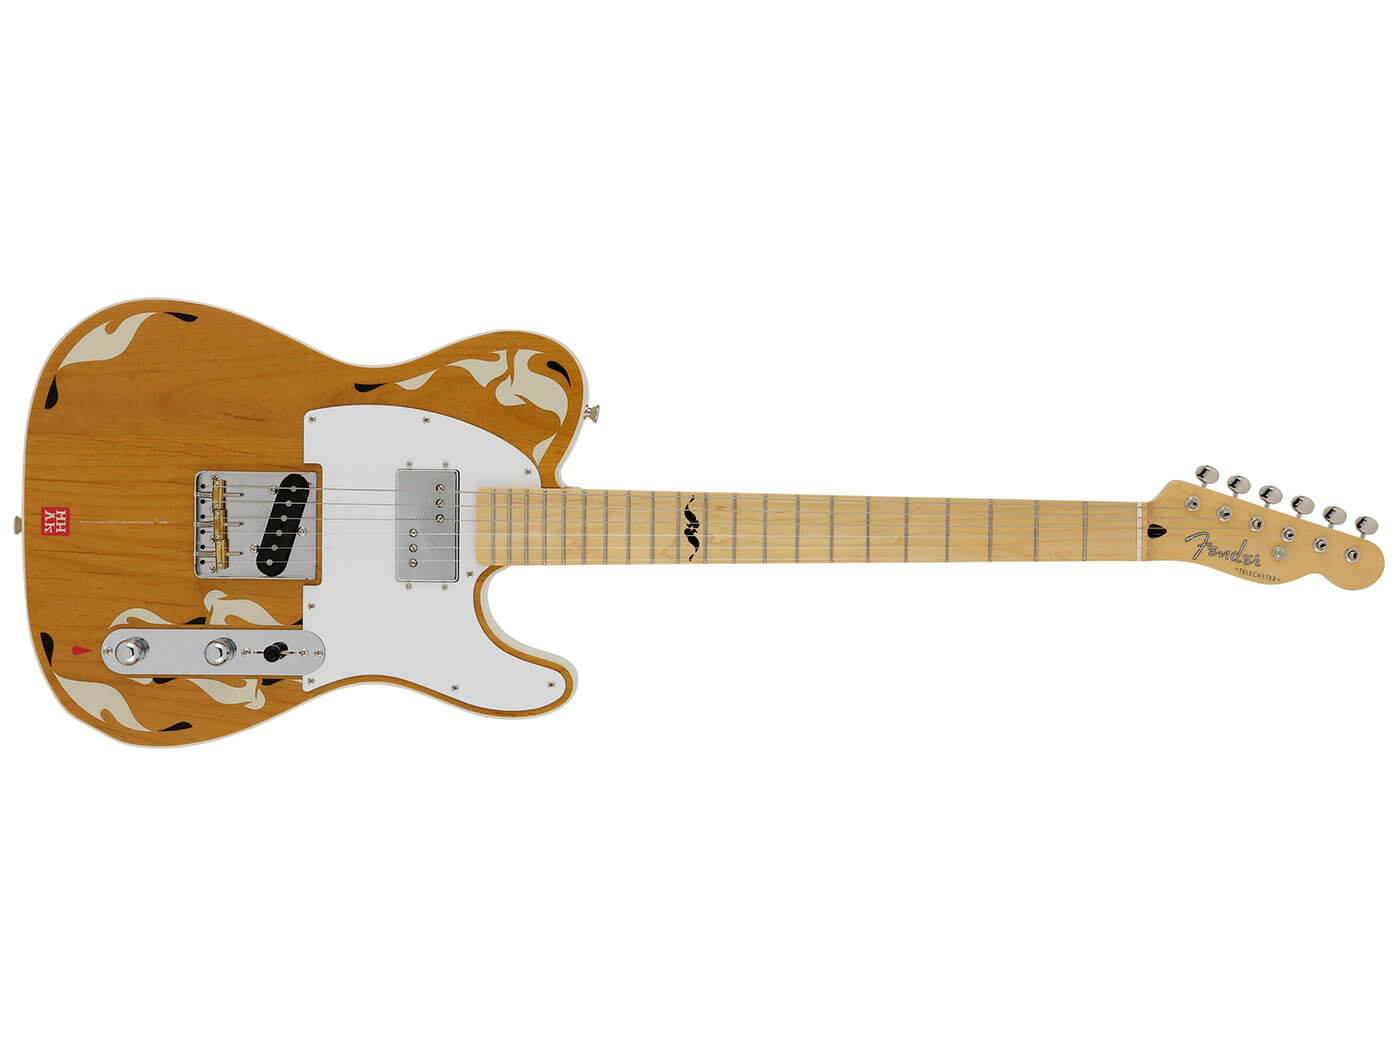 The MHAK Art Gallery Telecaster.